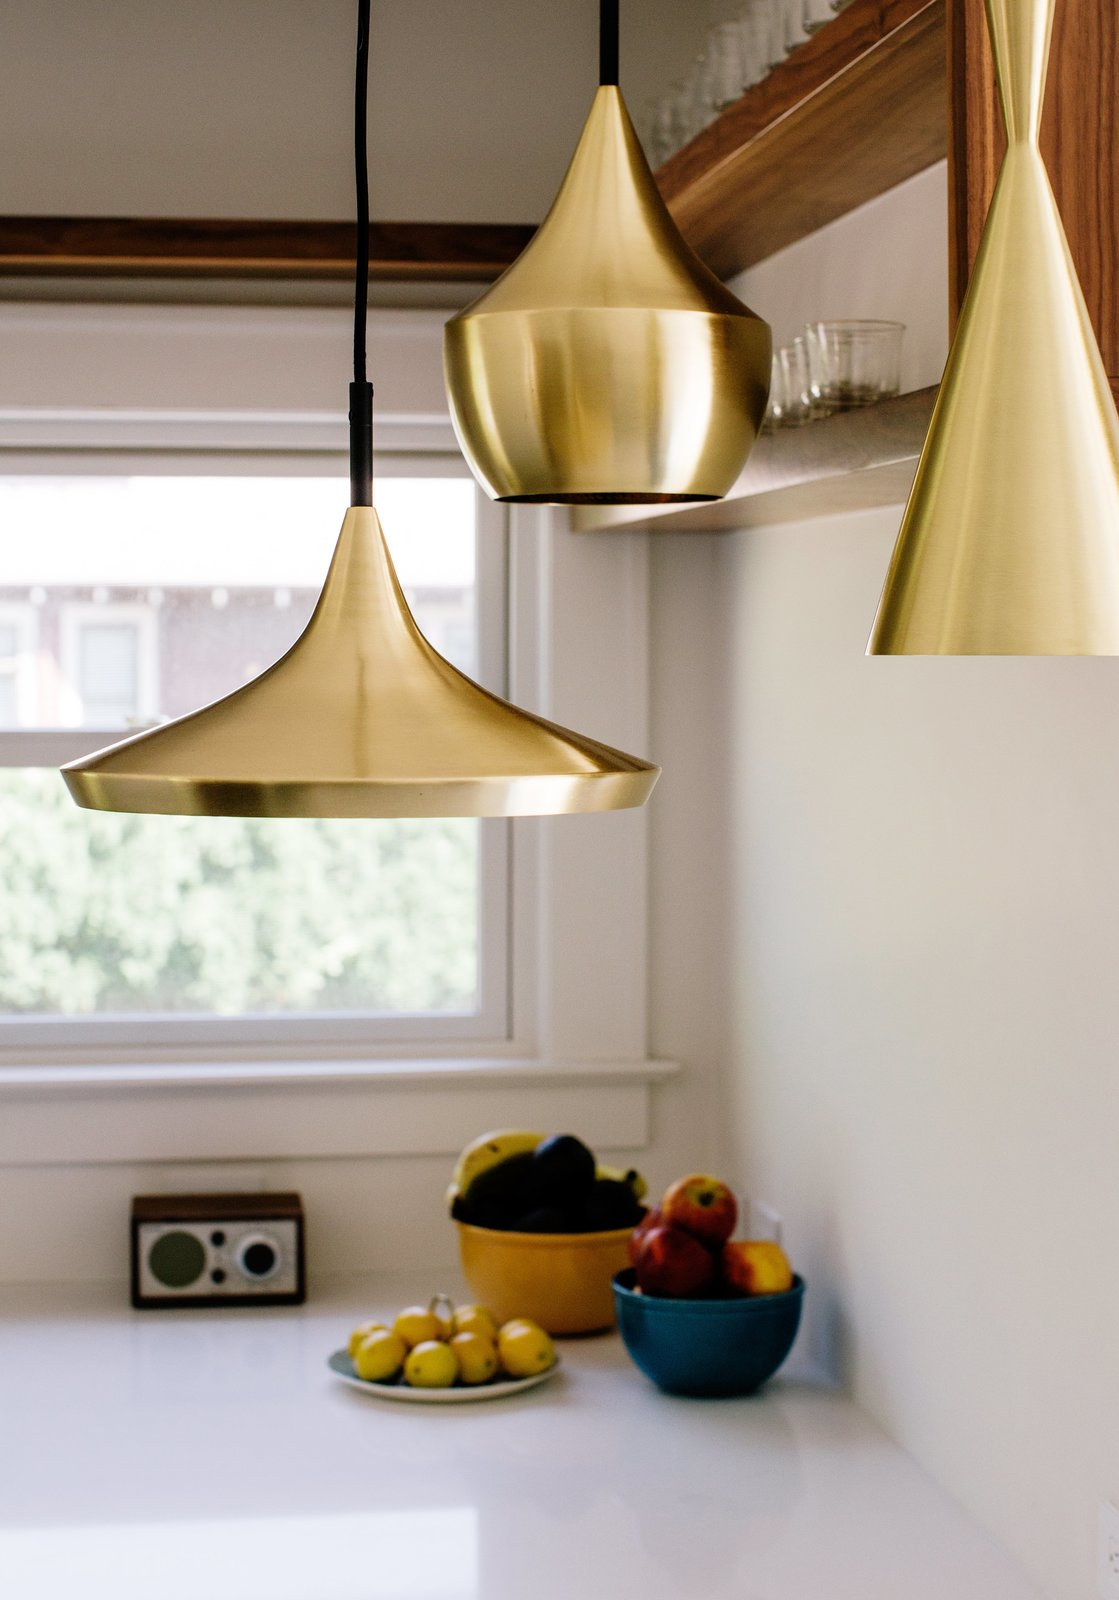 Brass pendants by Tom Dixon hang in the kitchen. A 1925 Portland Home Is a Rad Mashup of 20th-Century Styles - Photo 4 of 10